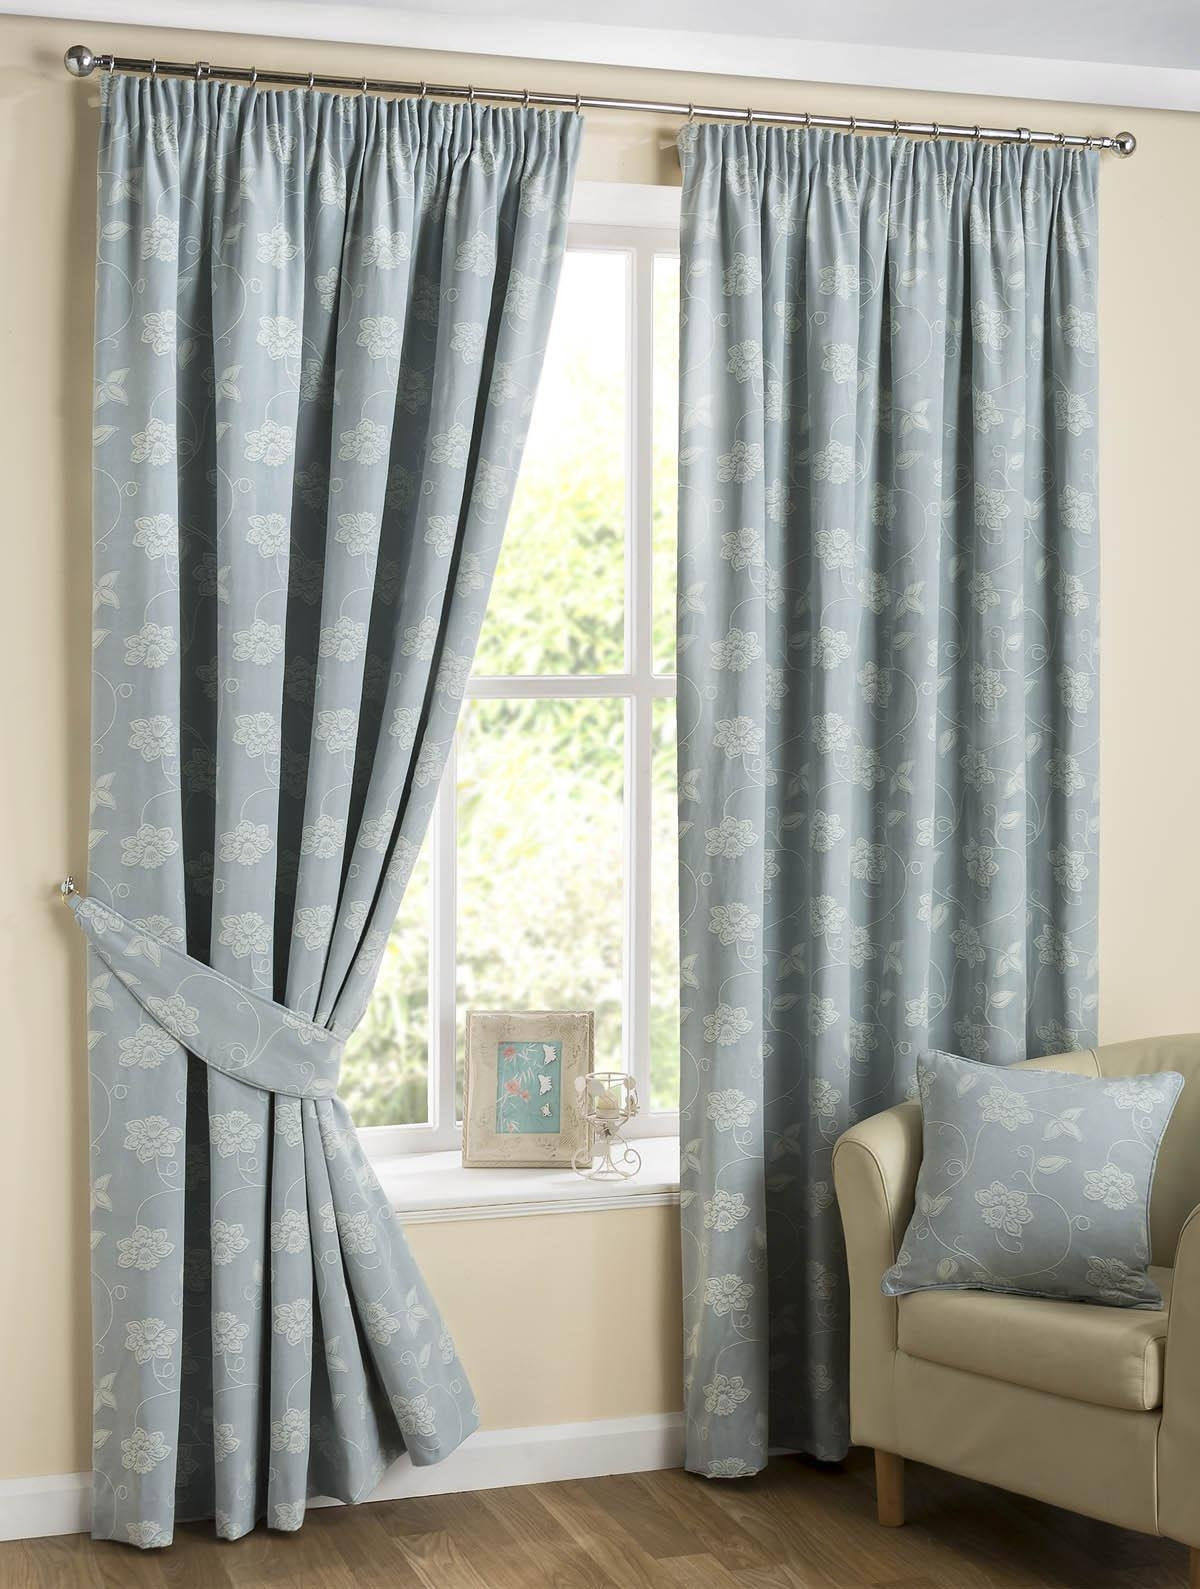 Floral Scroll Curtains Duck Egg Blue Free Uk Delivery Terrys Intended For Duck Egg Blue Striped Curtains (Image 9 of 15)